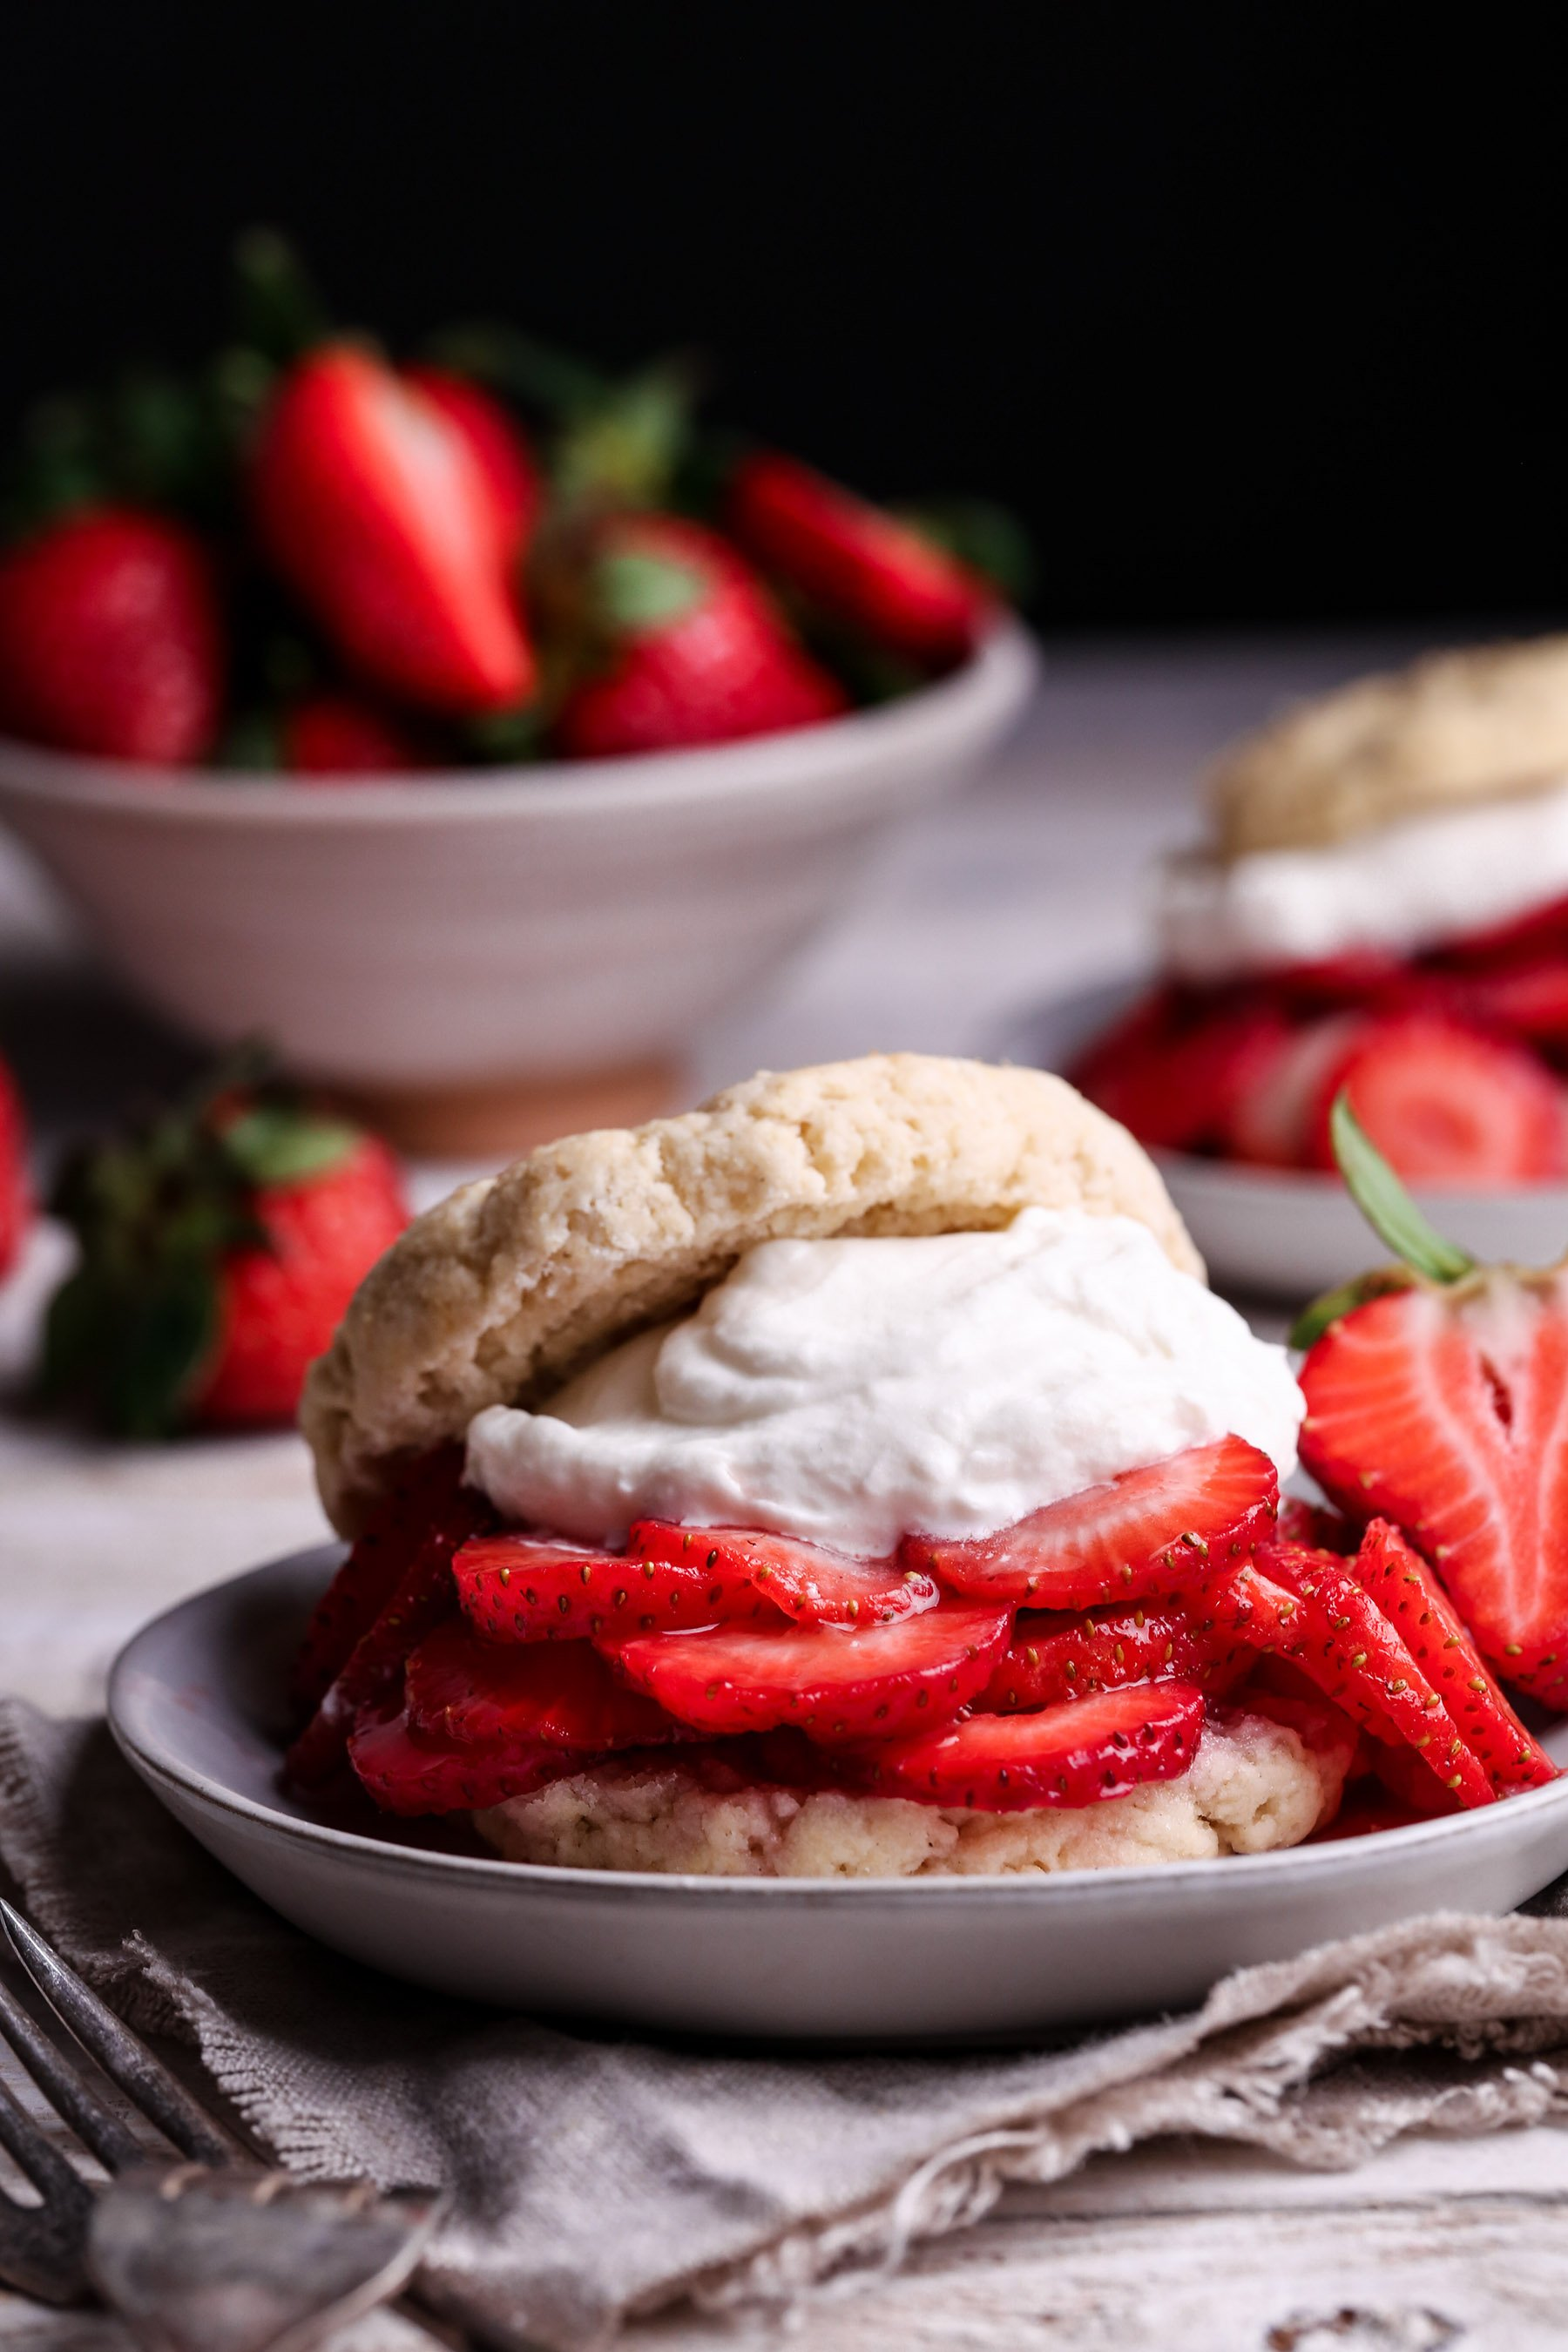 Healthier Strawberry Shortcake